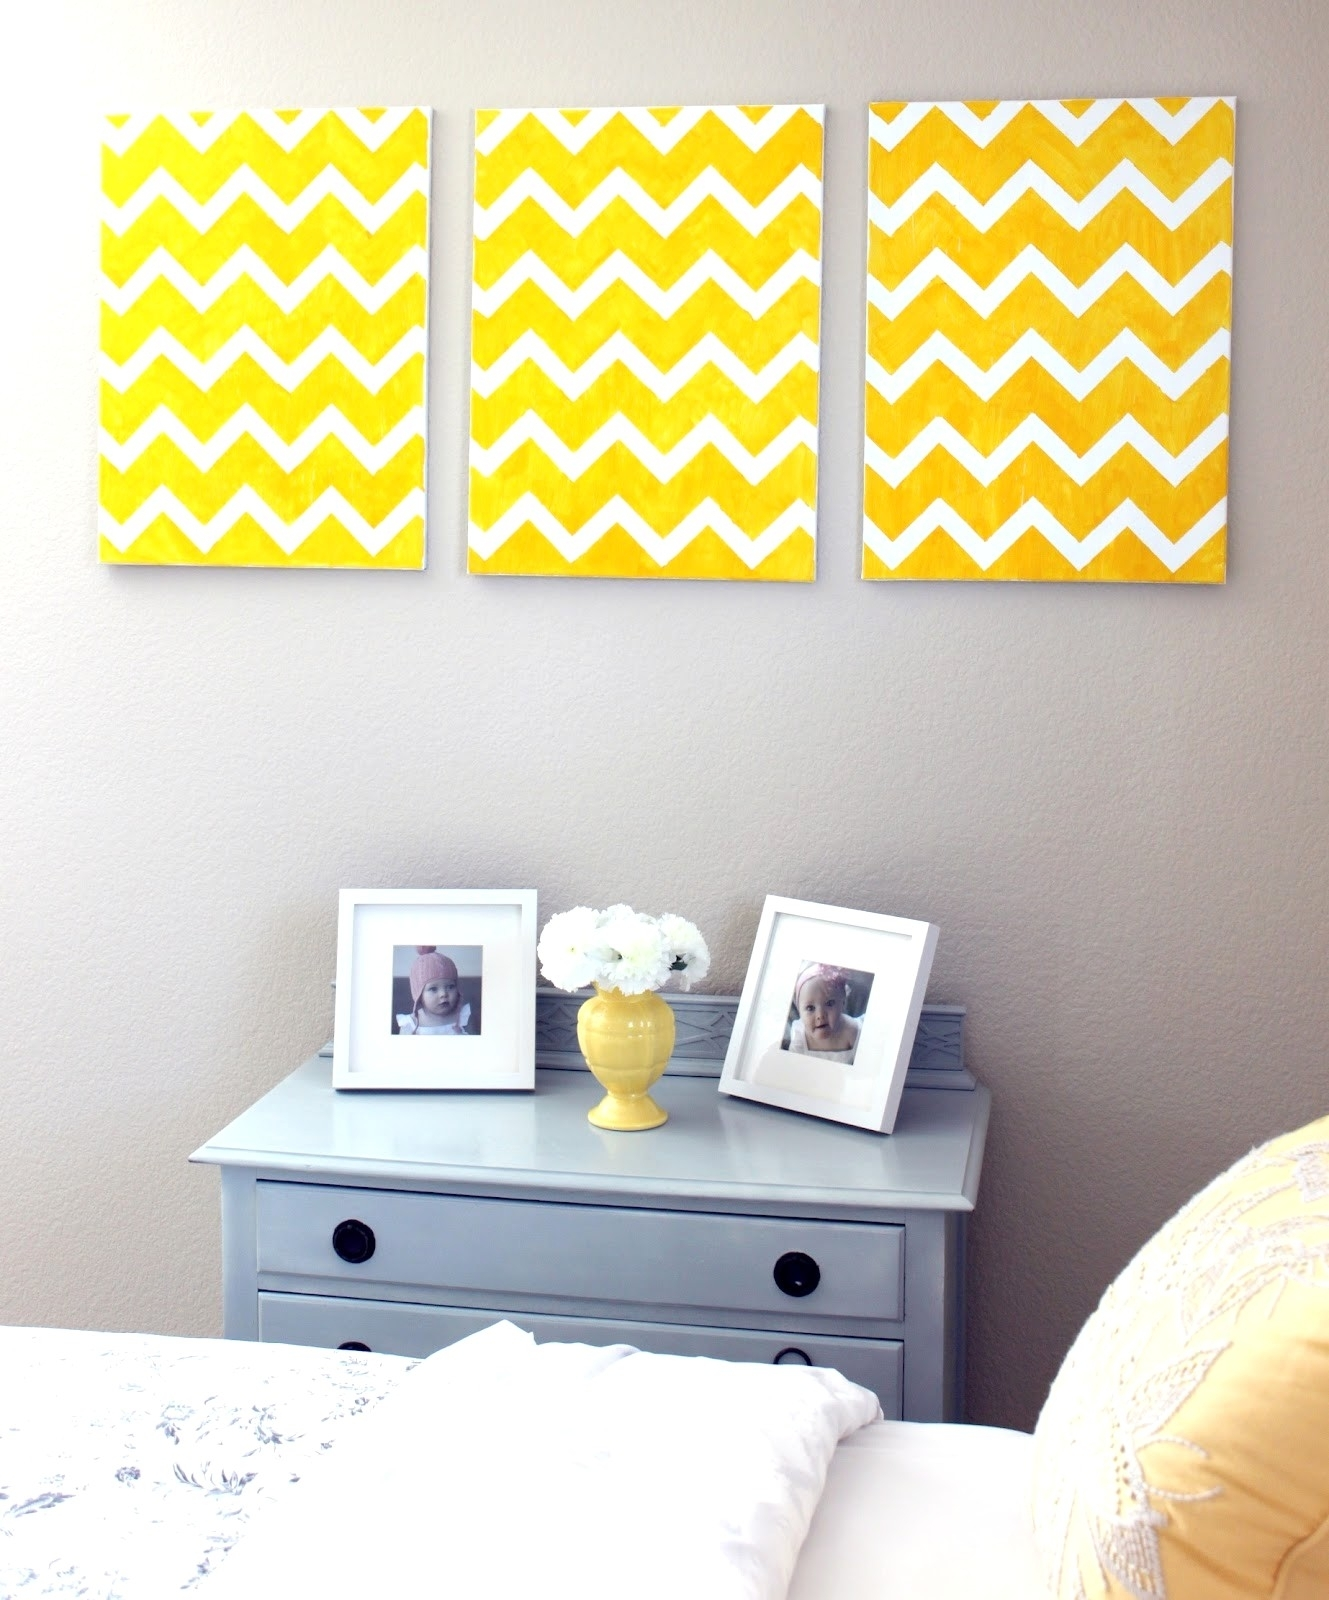 13 Diy Chevron Wall Art – Thebusinessuk Regarding Most Current Chevron Wall Art (View 1 of 20)